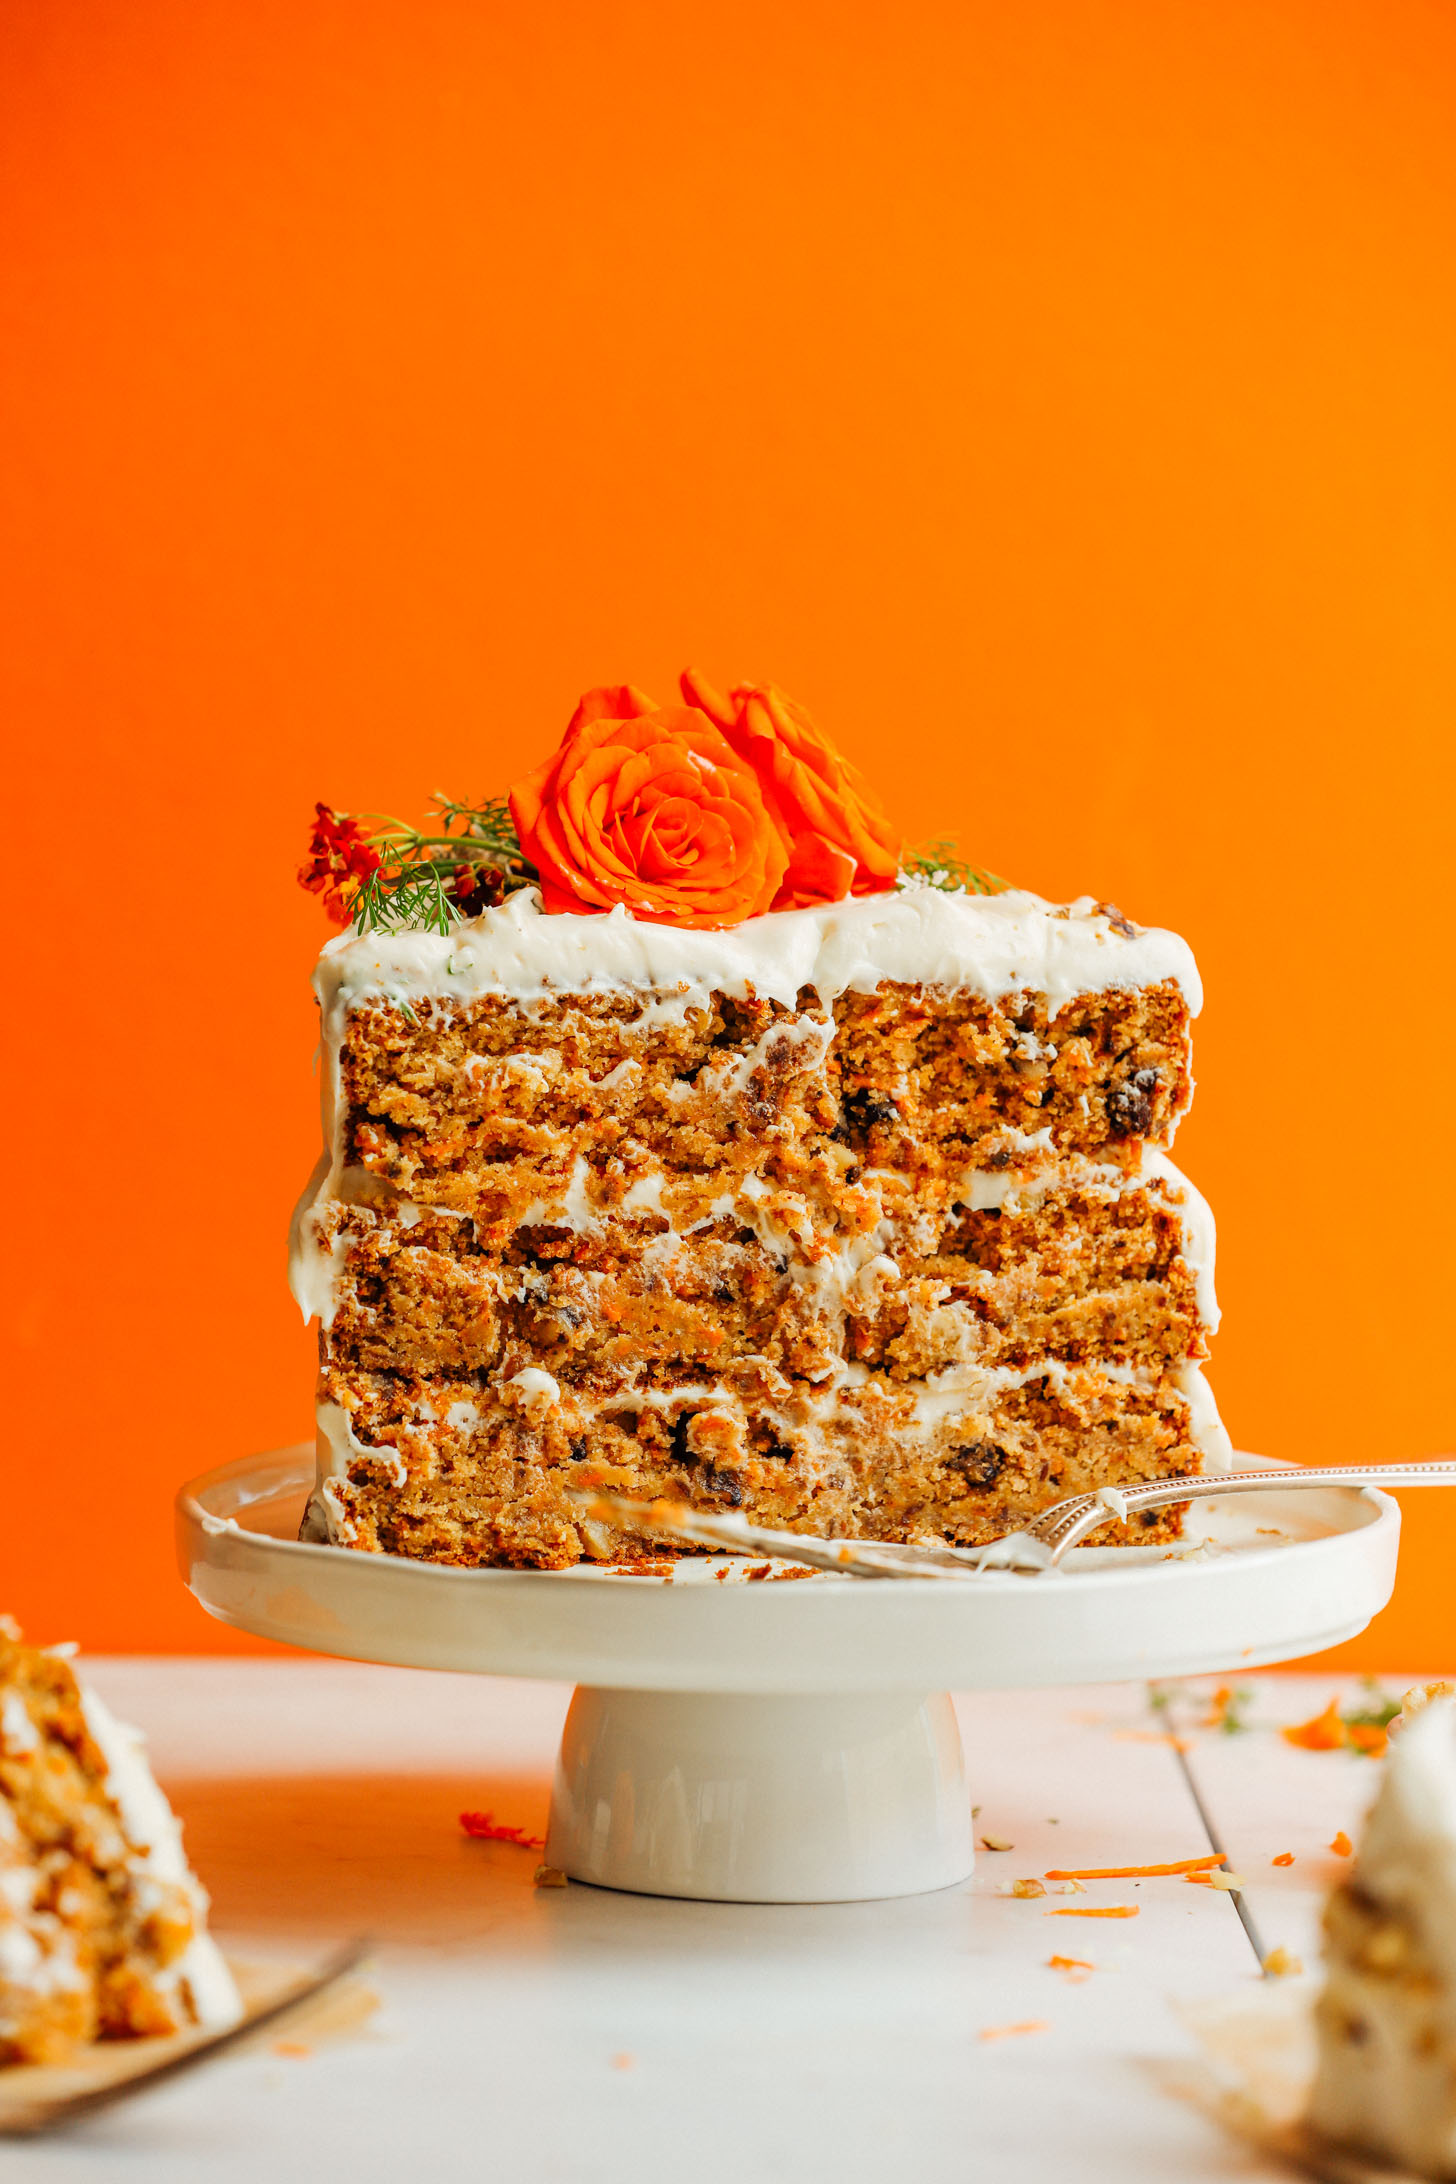 THE BEST Vegan Gluten Free Carrot Cake! 1 Bowl, rich, moist, with 5 FROSTING options! #vegan #glutenfree #carrotcake #cake #recipe #minimalistbaker